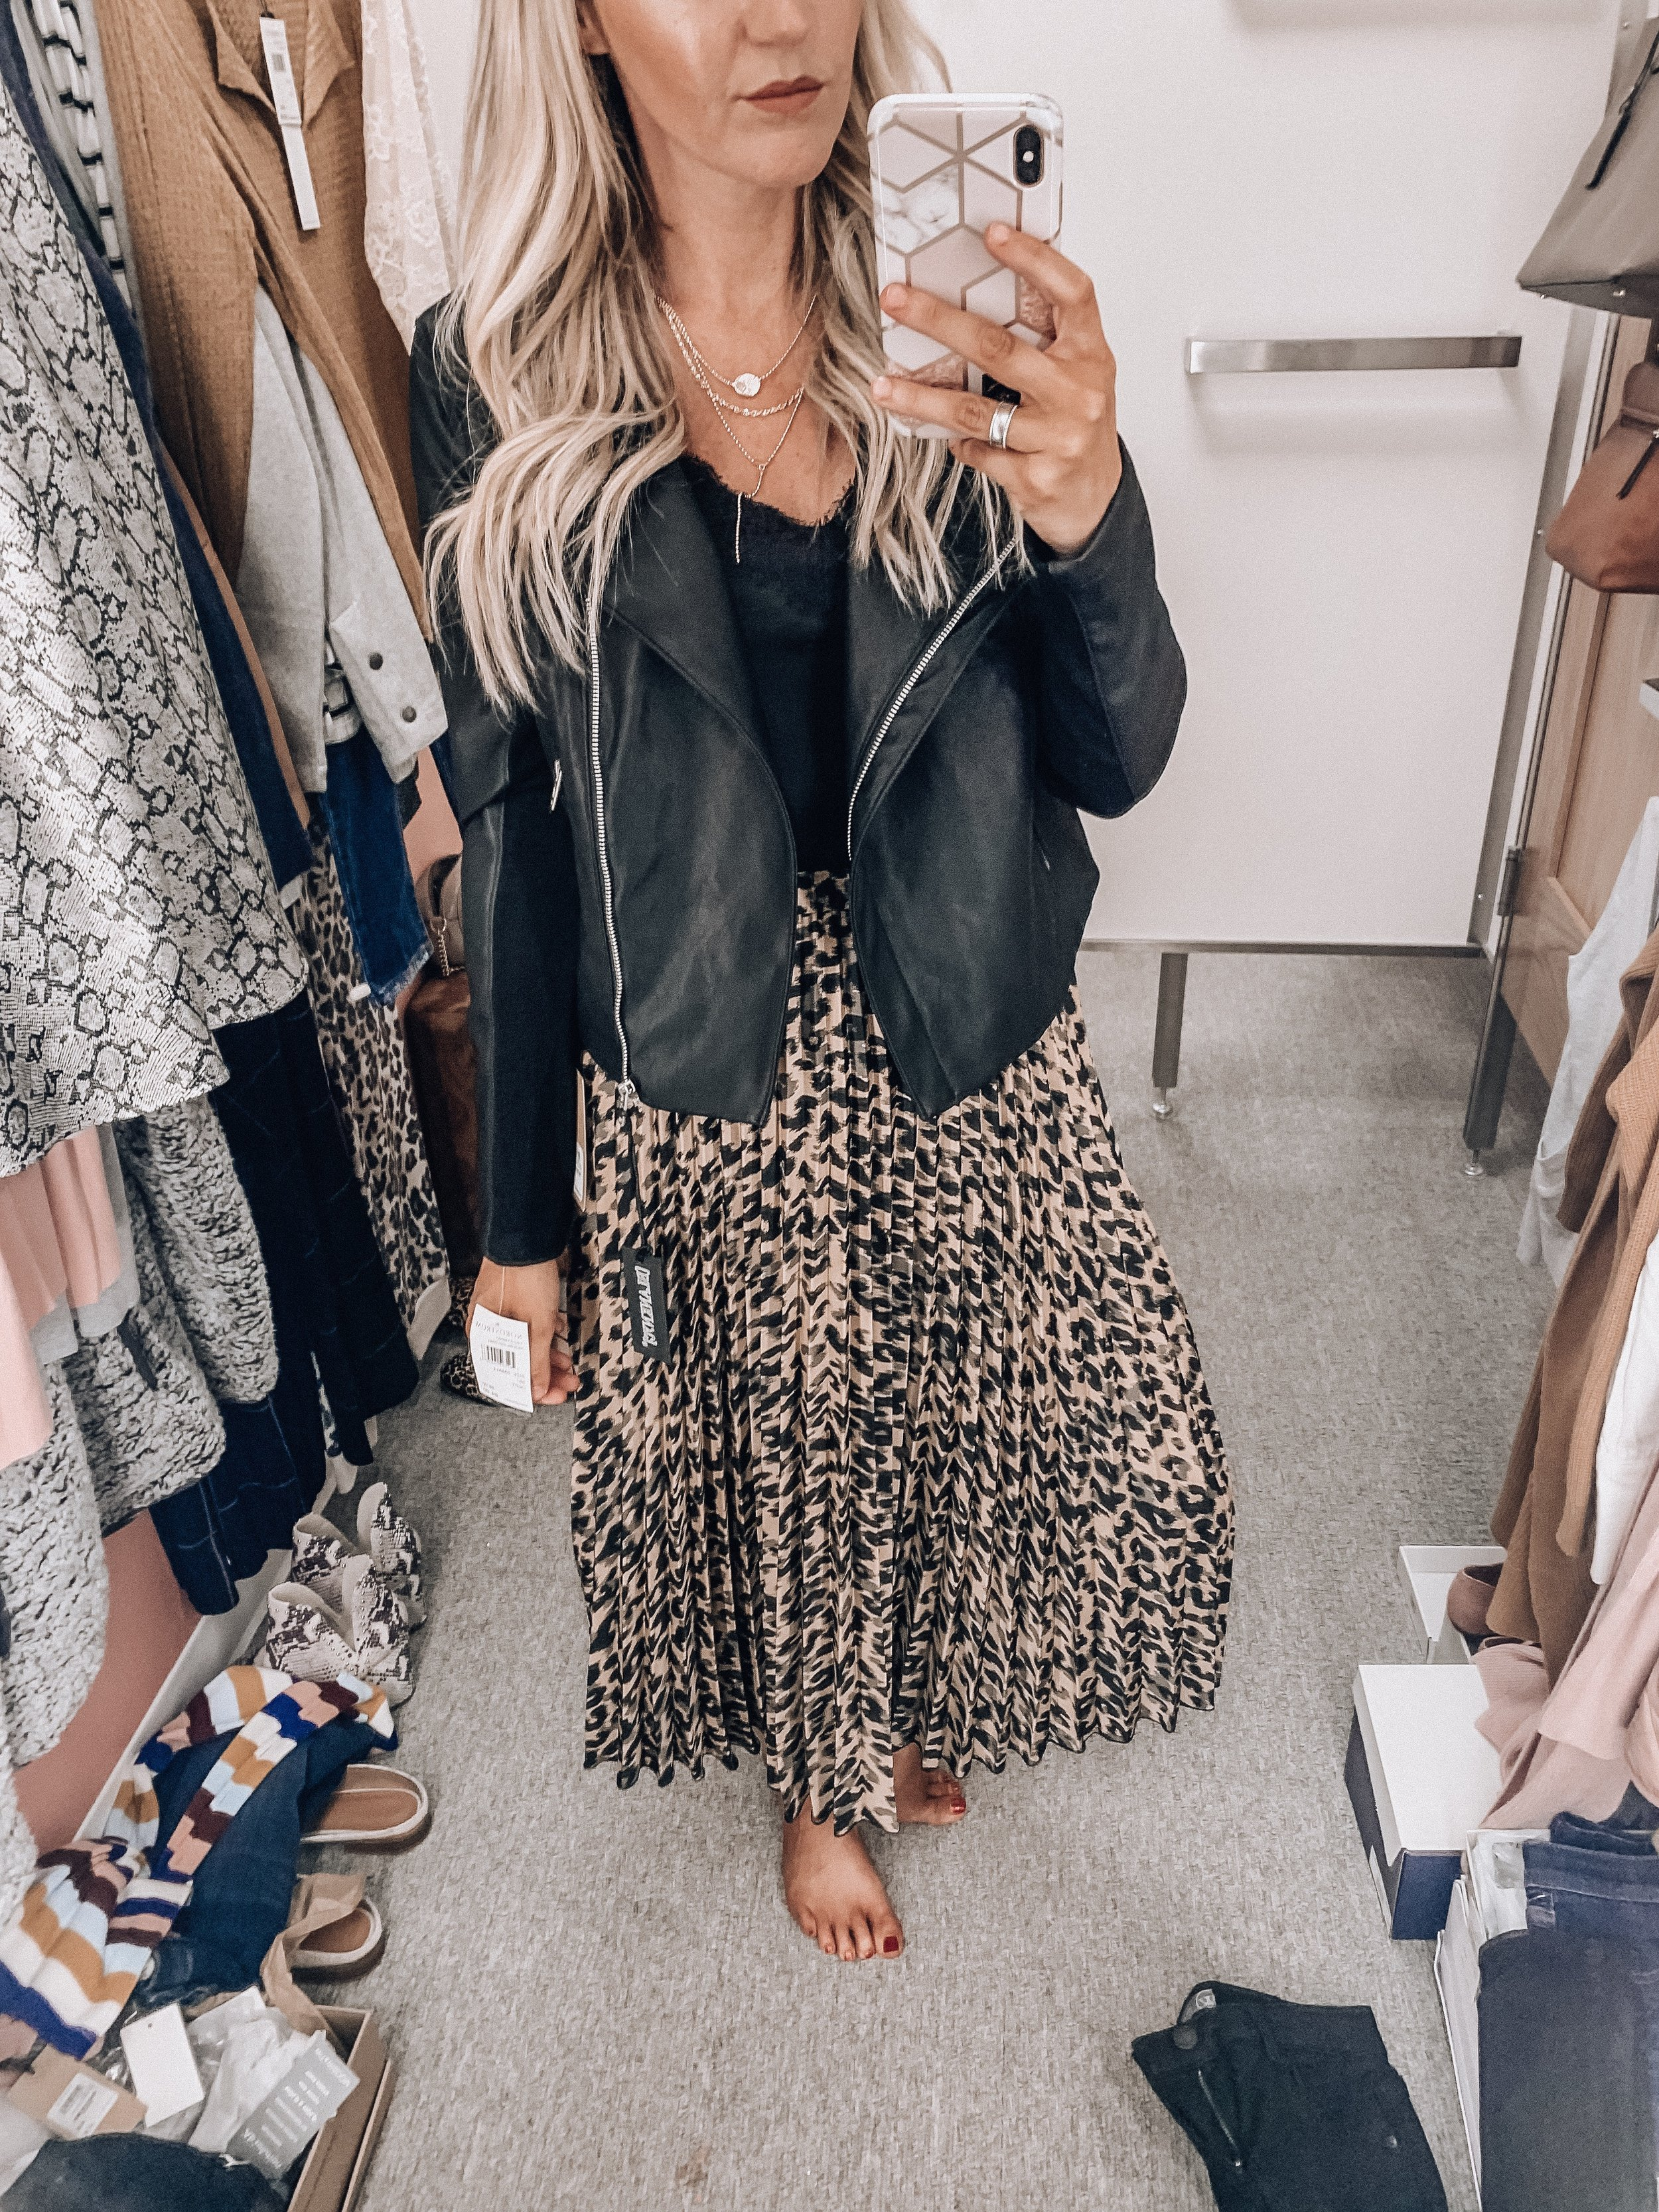 Jacket: size small    Cami: size extra small    Leopard skirt: size small